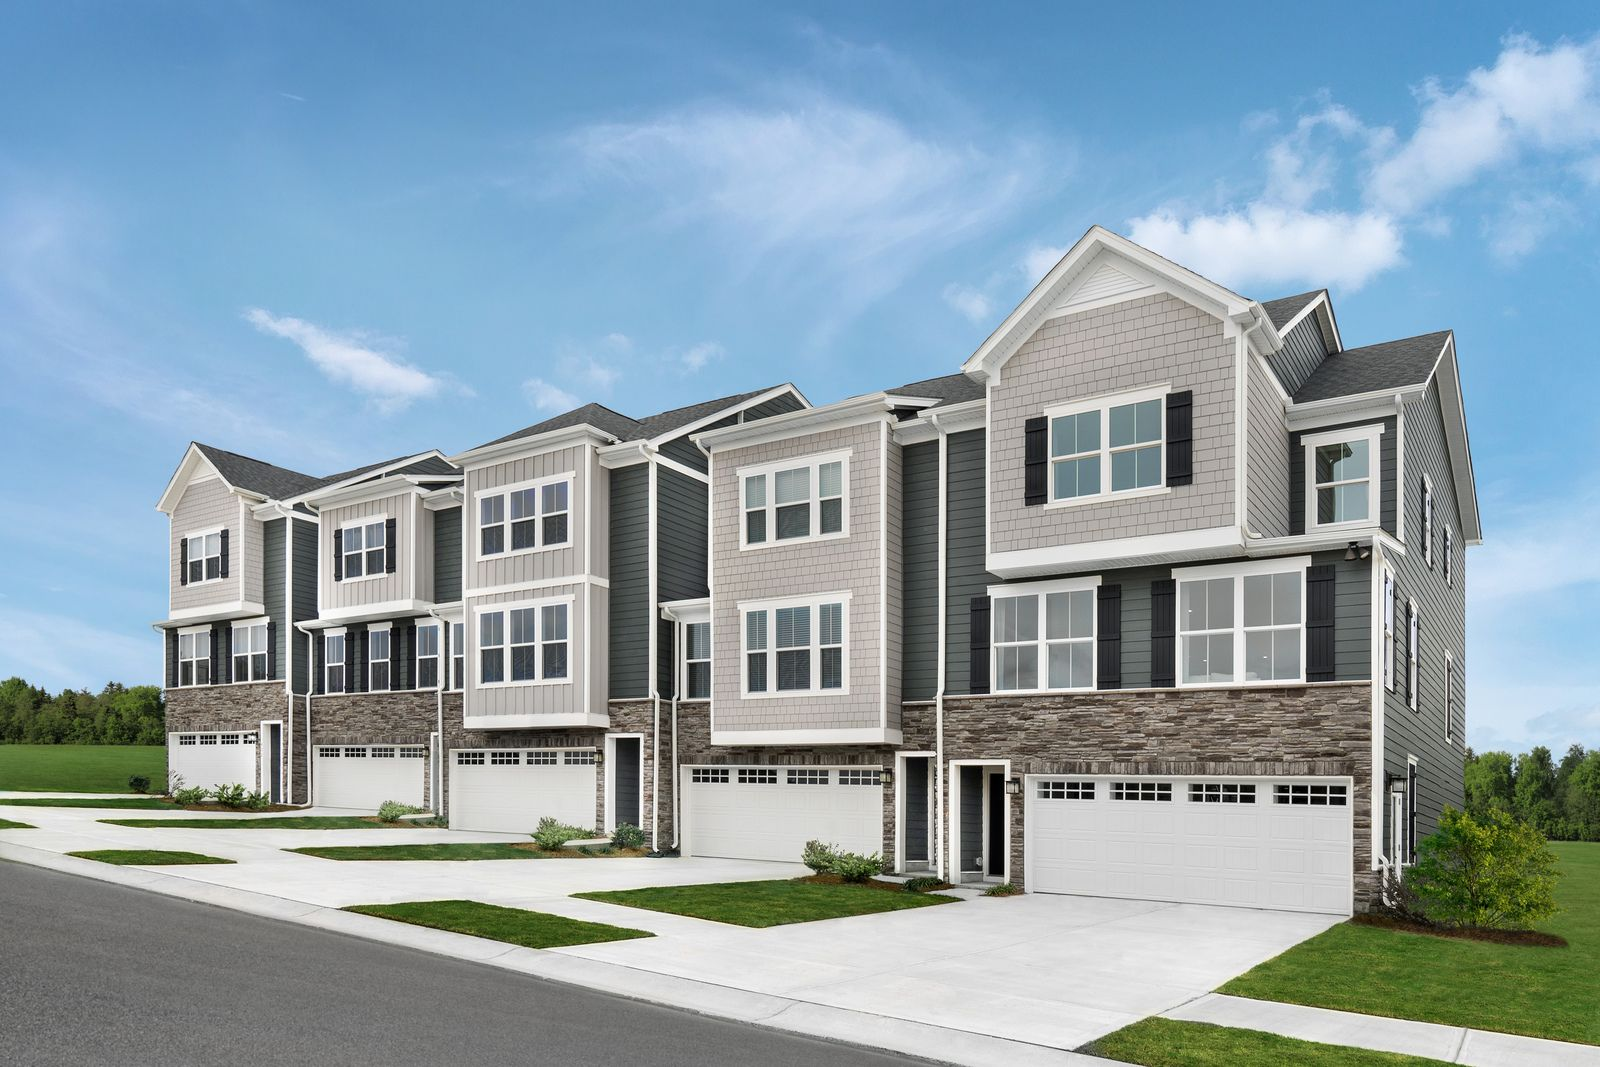 Welcome Home to Laurel Place:The only private cul-de-sac community of 36 trendy, modern townhomes which offer the built-in luxuries that you expect & located right off of I-79 in Upper St. Clair.Click here to schedule your visit